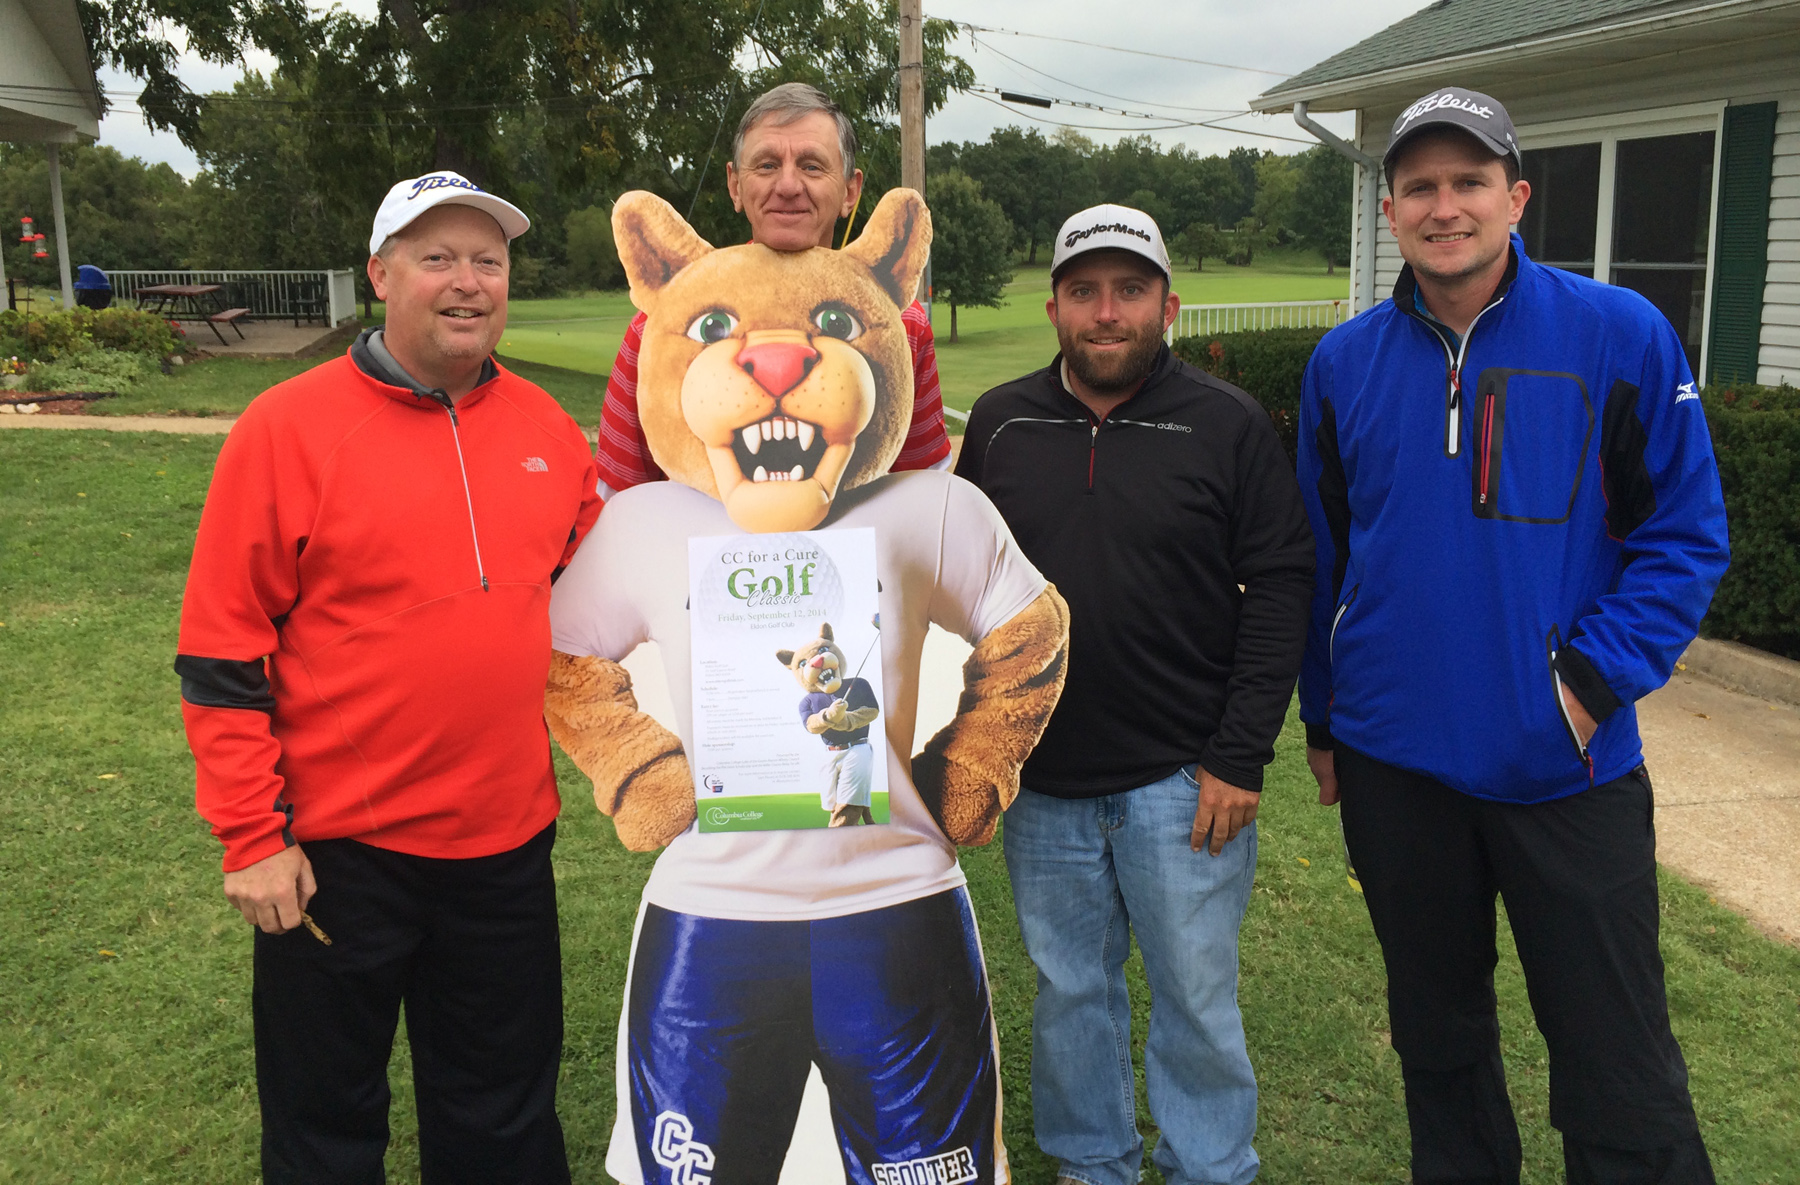 'CC for a Cure' golf tourney raises $2,000 for scholarships and Relay for Life